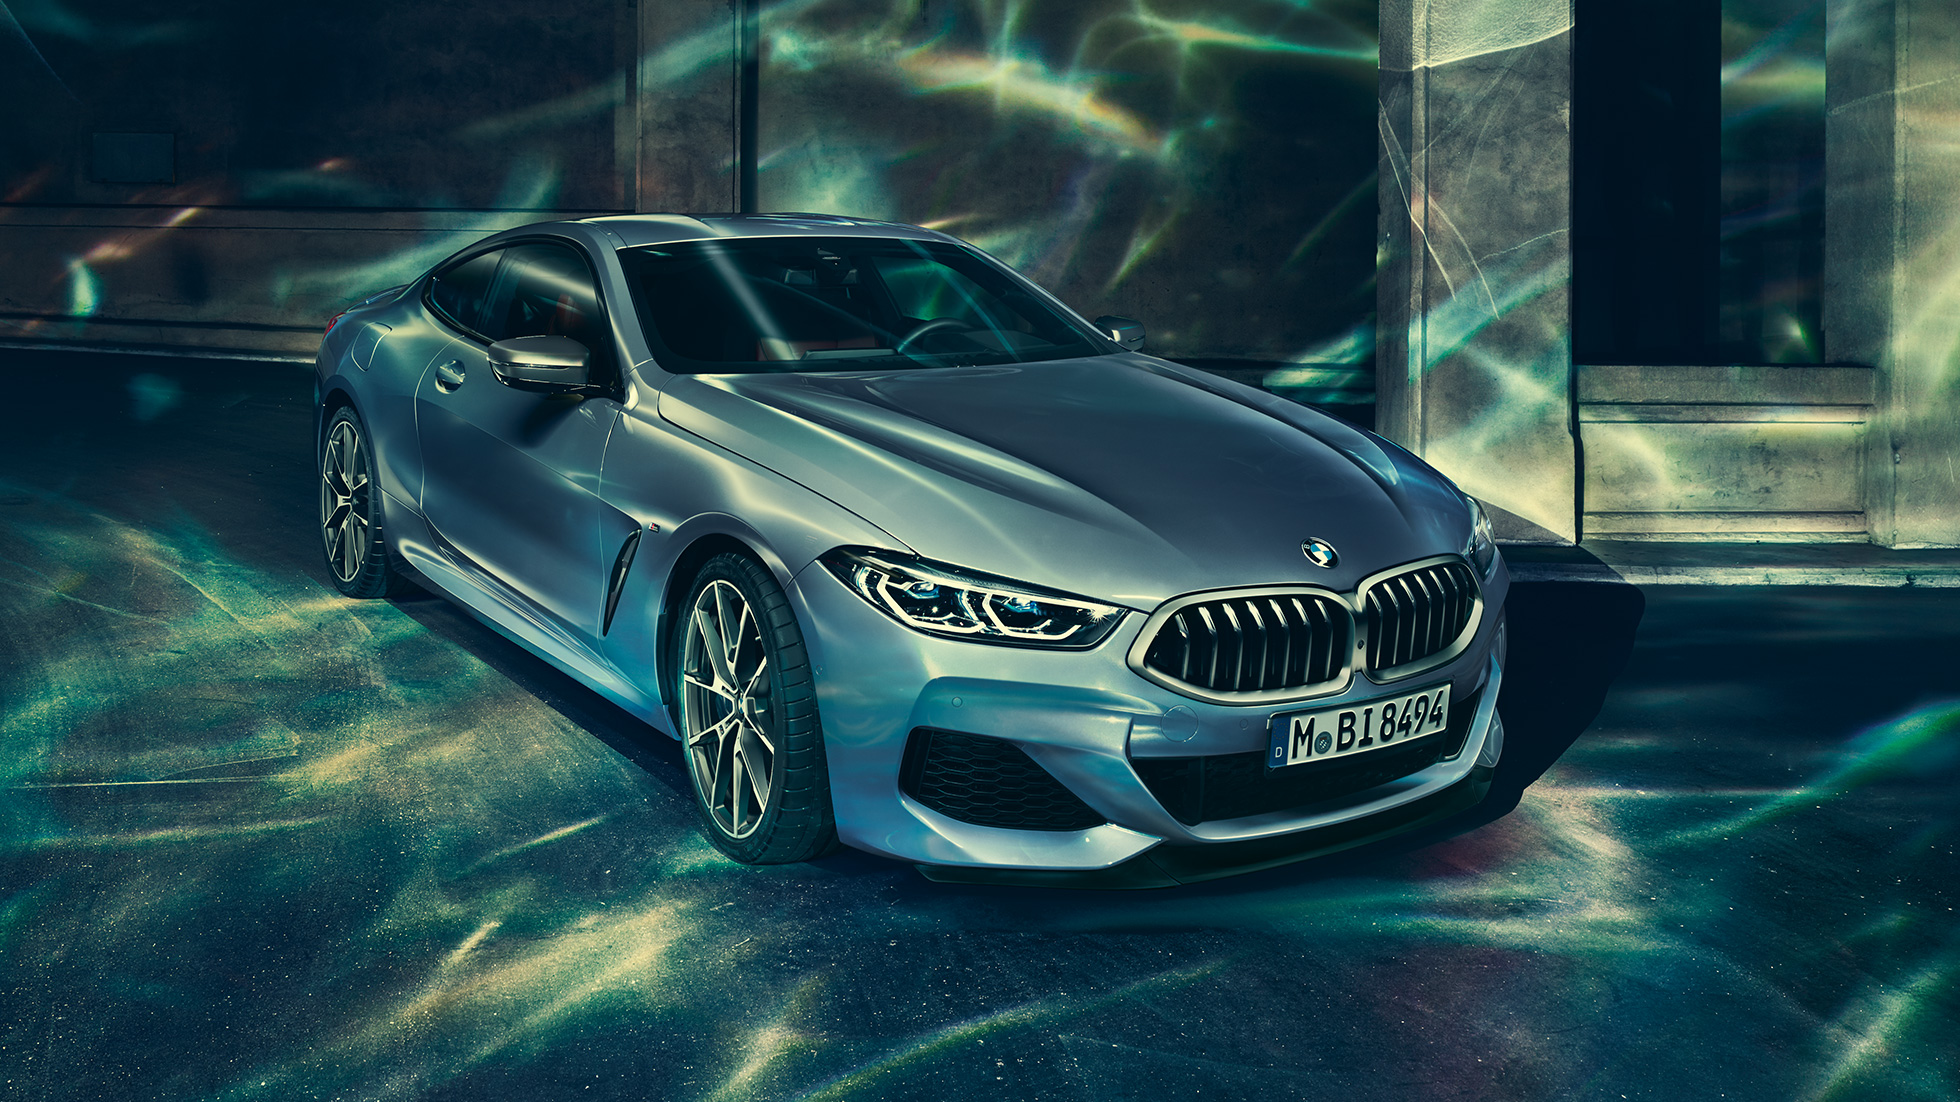 BMW M850i xDrive Coupé in Barcelona Blue metallic, three-quarter front view left, standing in front of building.